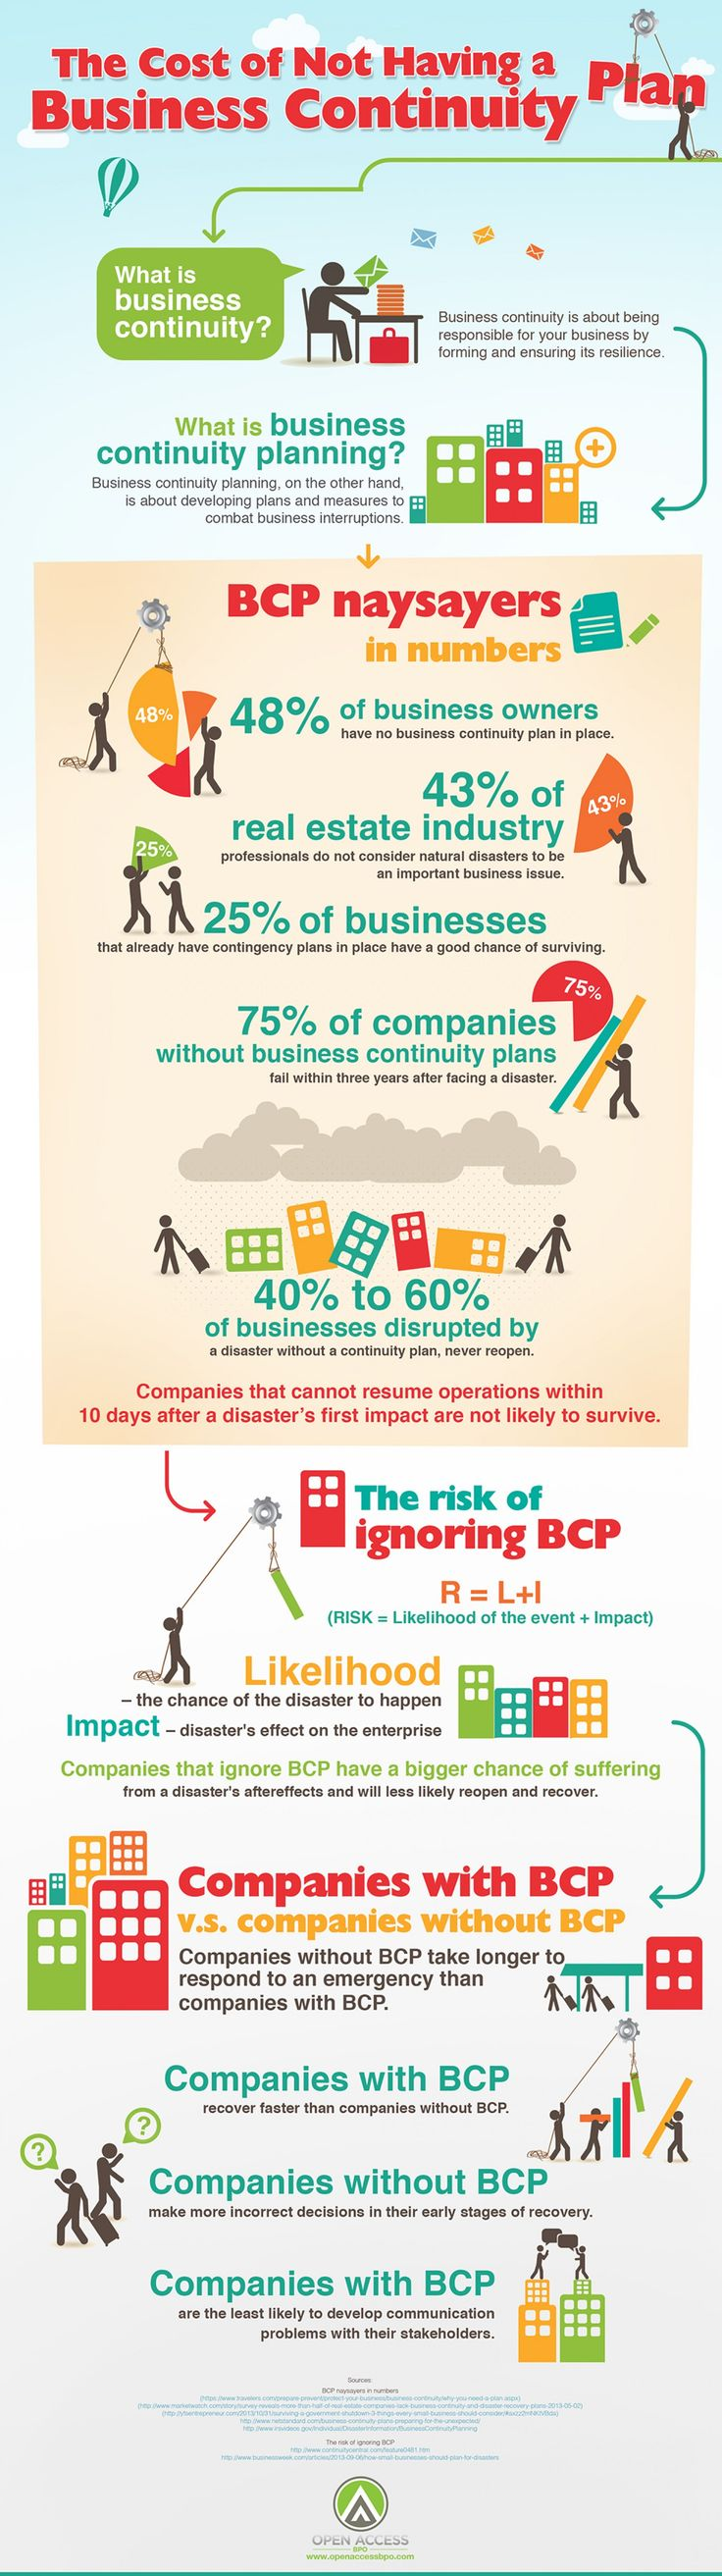 Every organization is at risk. #Business continuity planning ensures that businesses are ready for any disaster occurrence with the right information and resources.